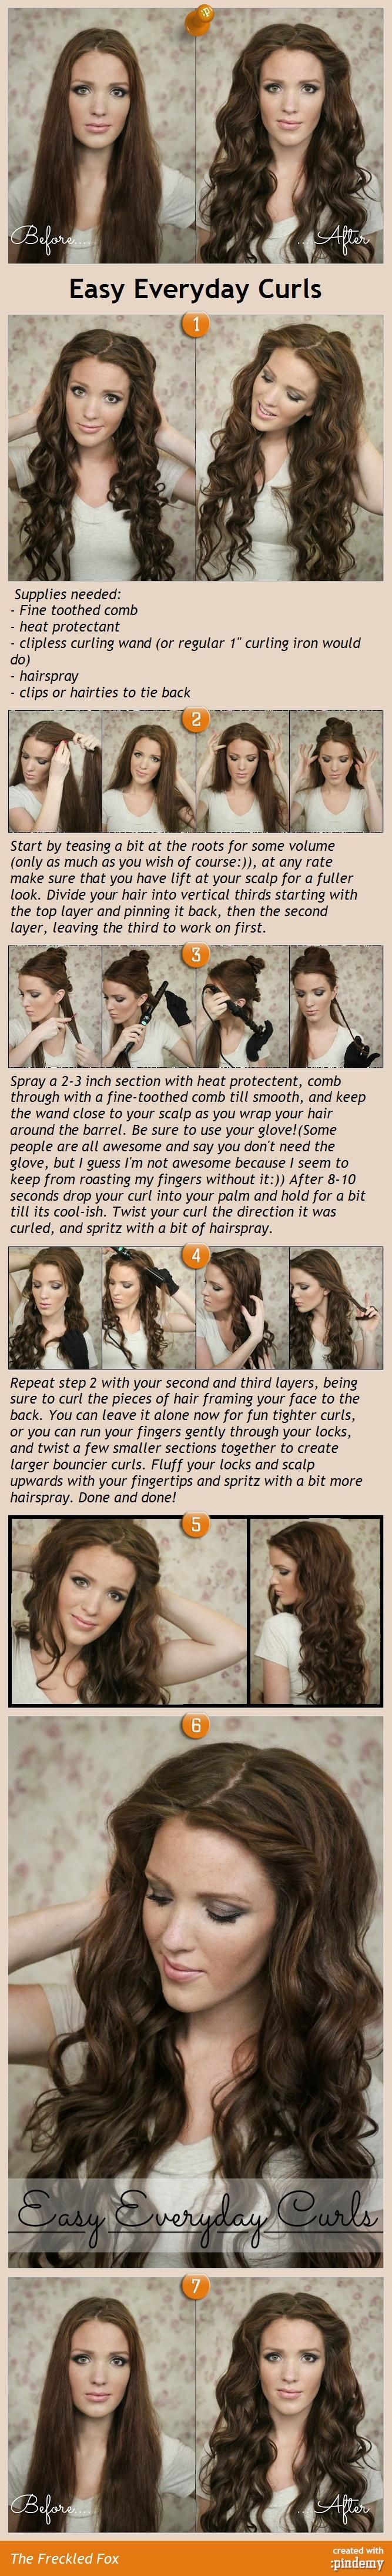 Easy Everyday Curls tutorial